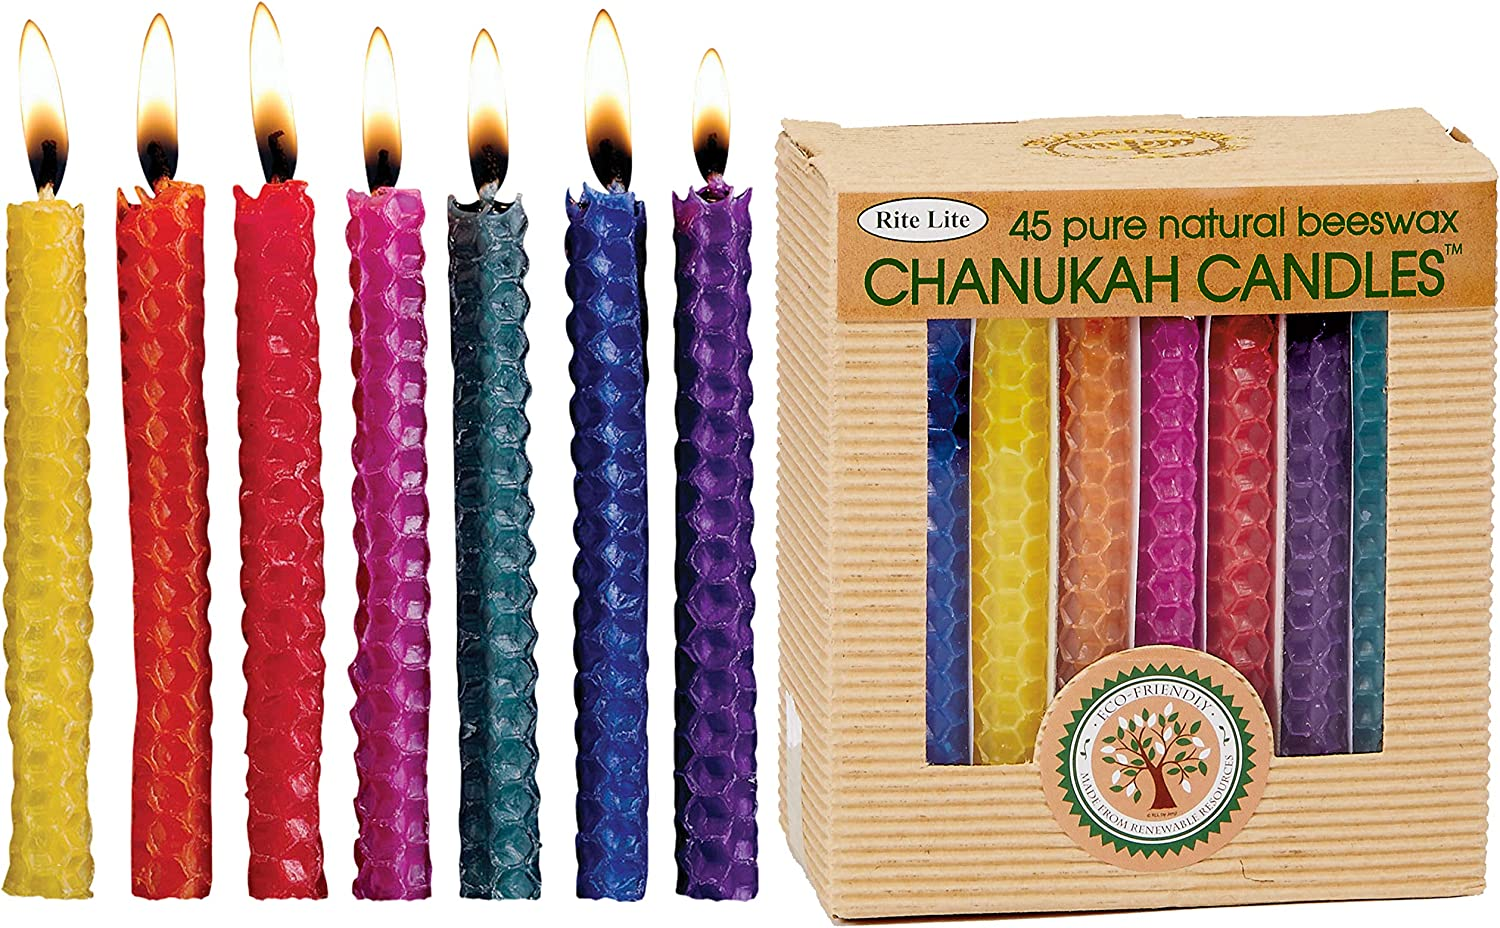 Rite Lite Hand Rolled Honeycomb Beeswax Chanukah Candles Home & Kitchen, 45 CT, Multicolor, Count Hanukah Item